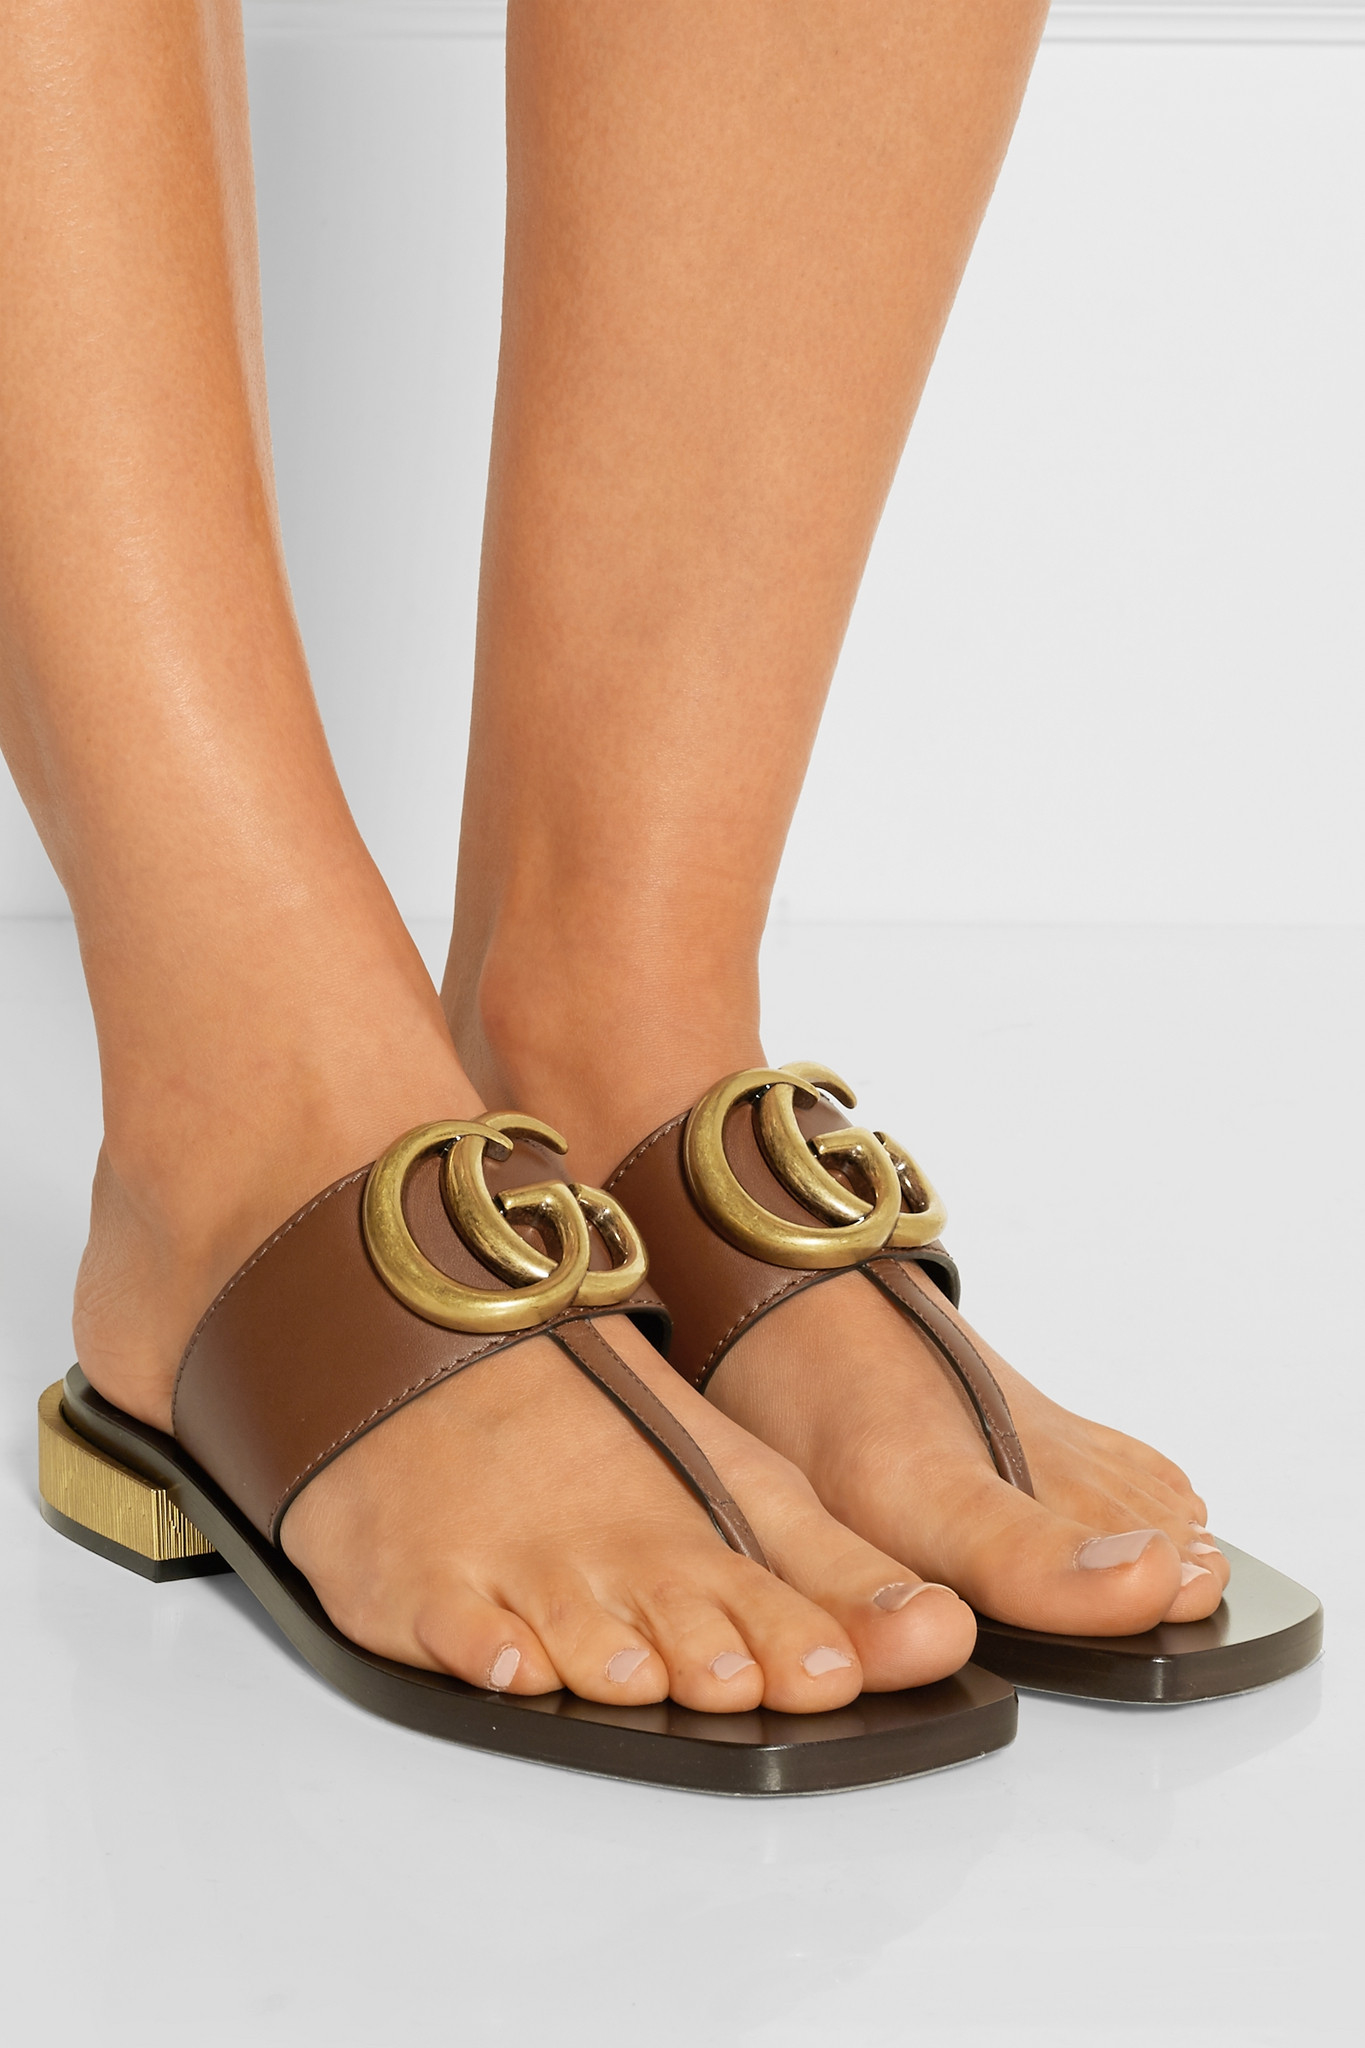 15a7367c06d8e Lyst - Gucci Embellished Leather Sandals in Brown